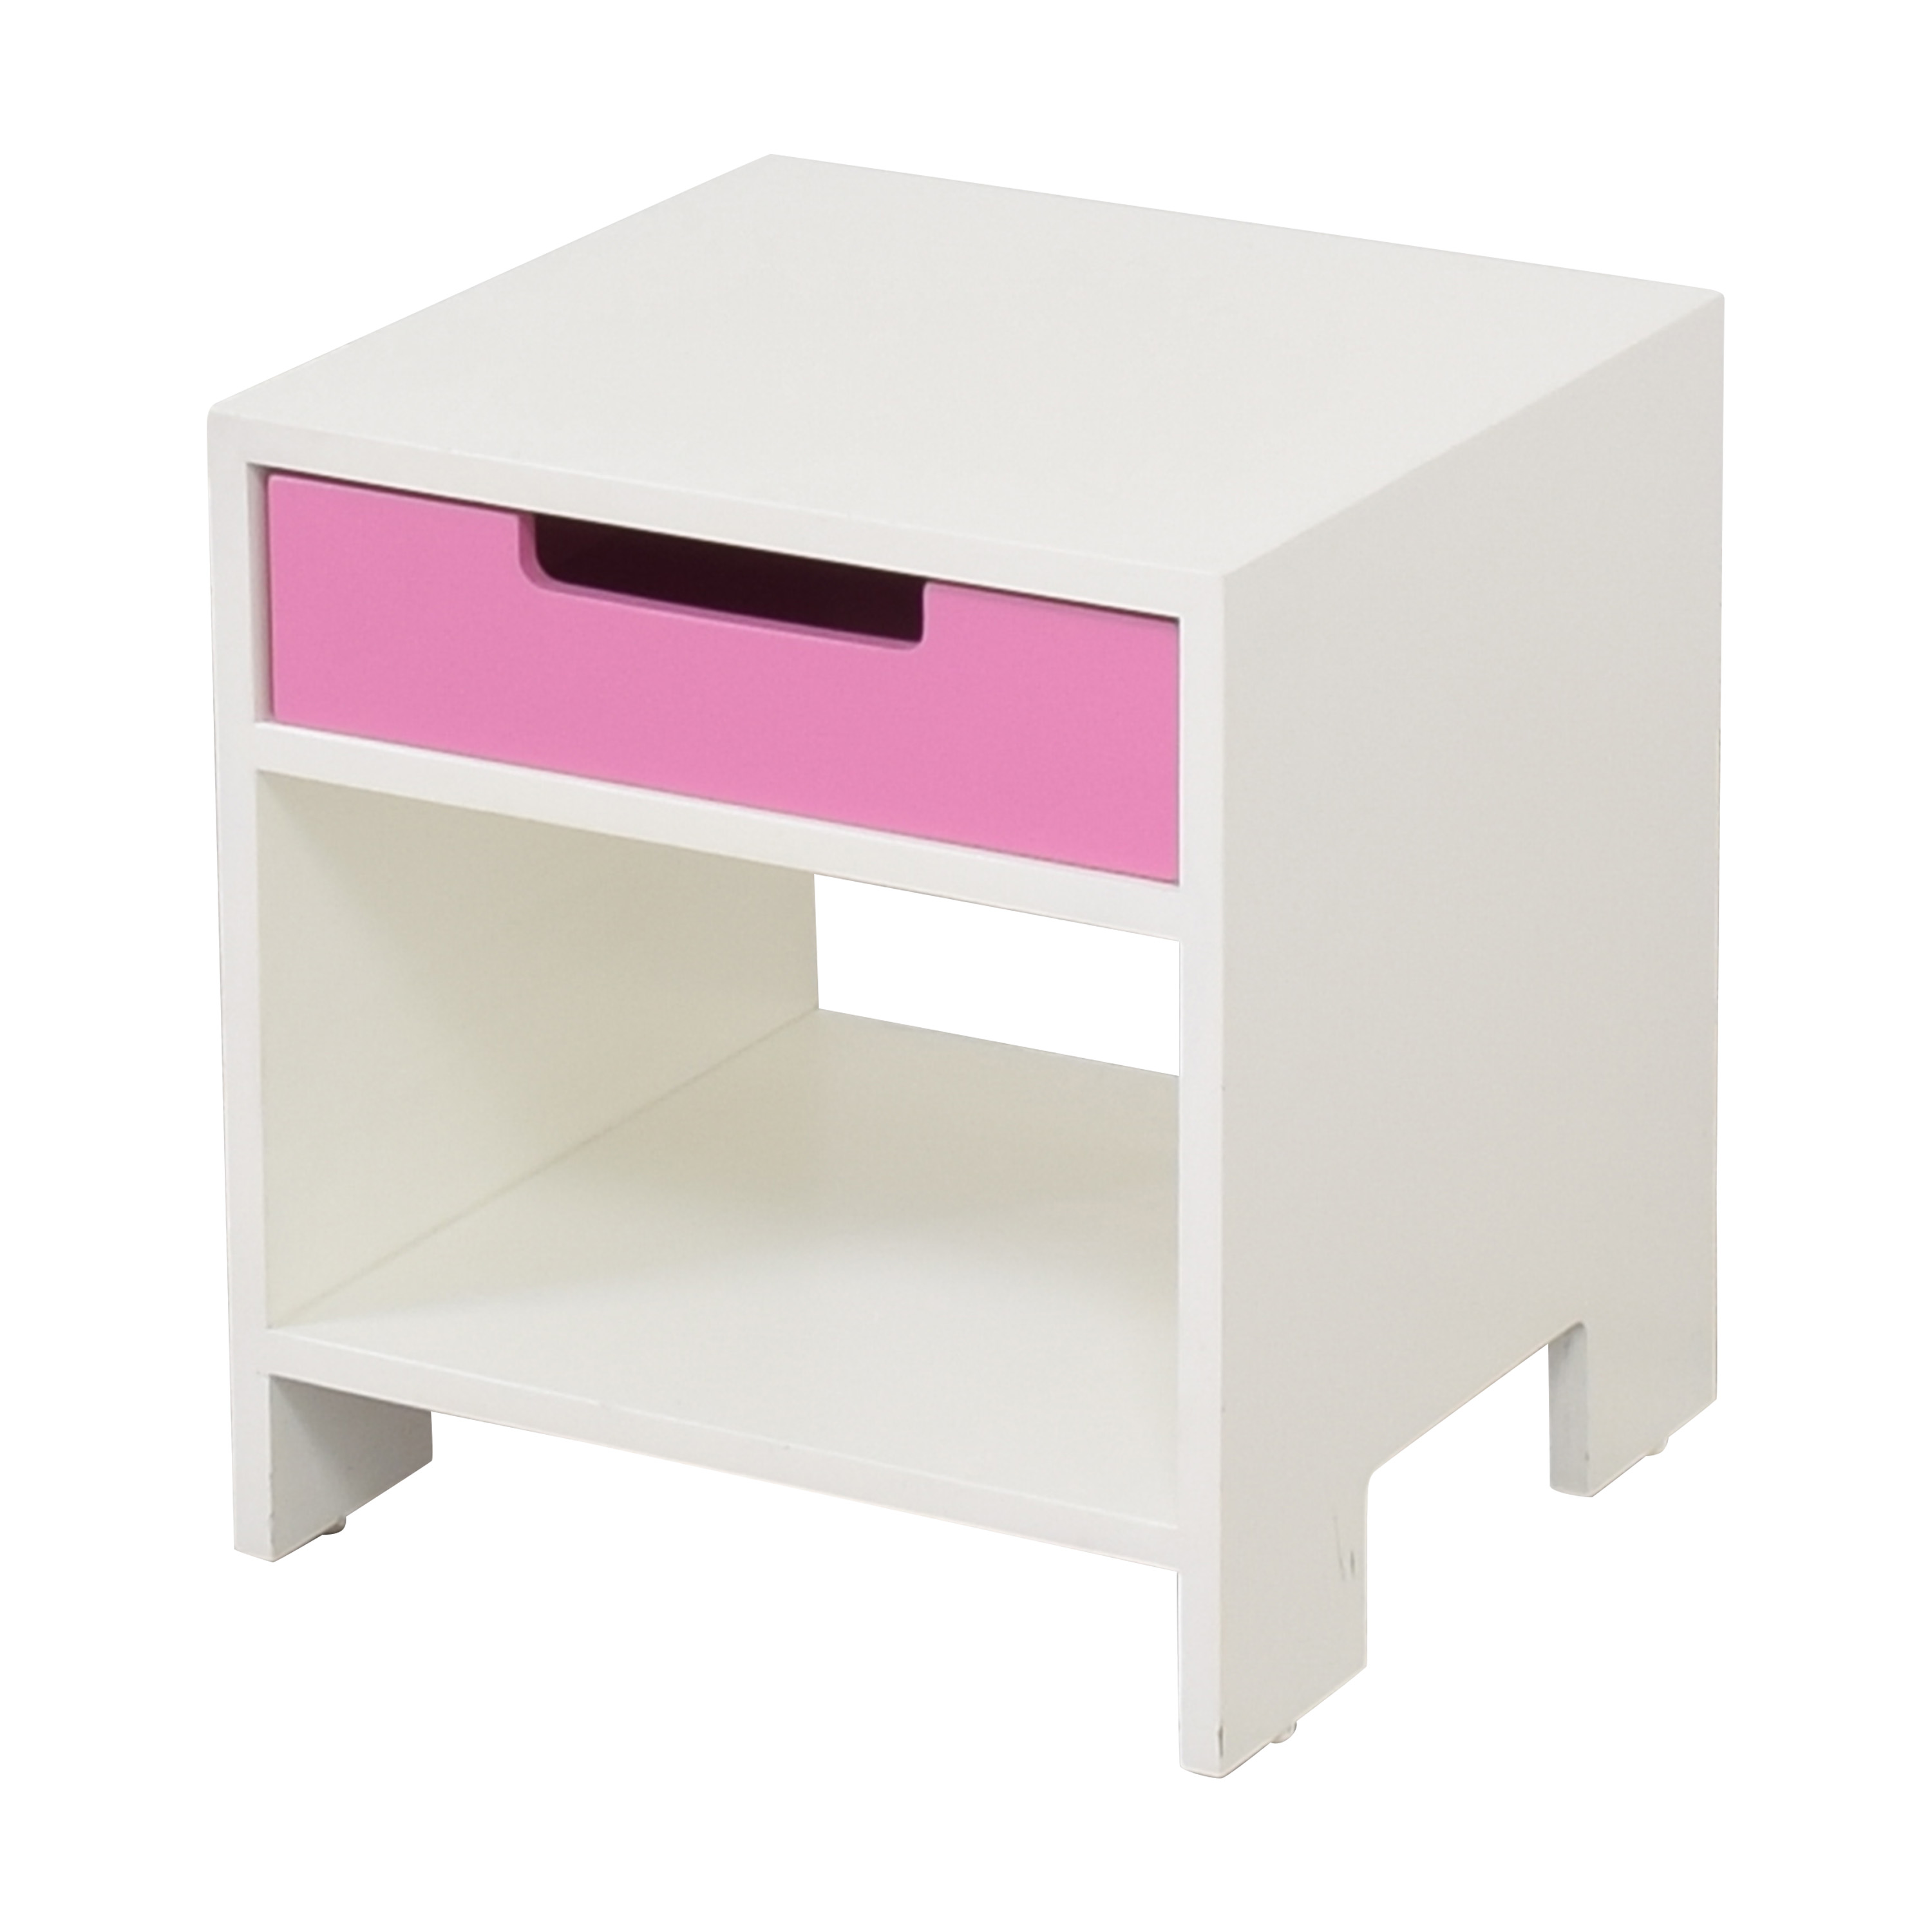 ducduc Single Drawer Nightstand / Tables